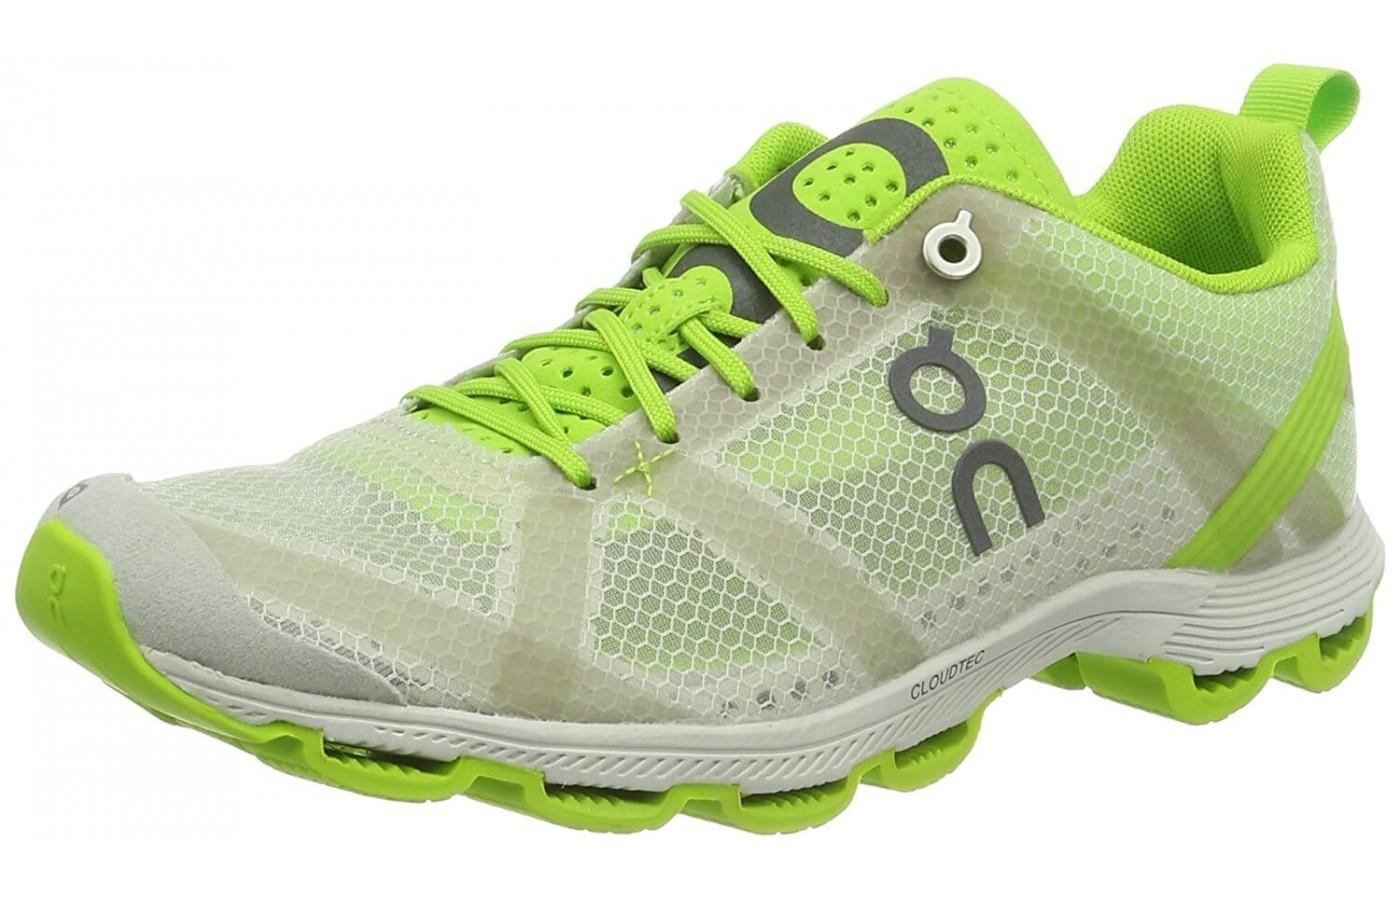 an angled side view of the Cloudracer running shoe